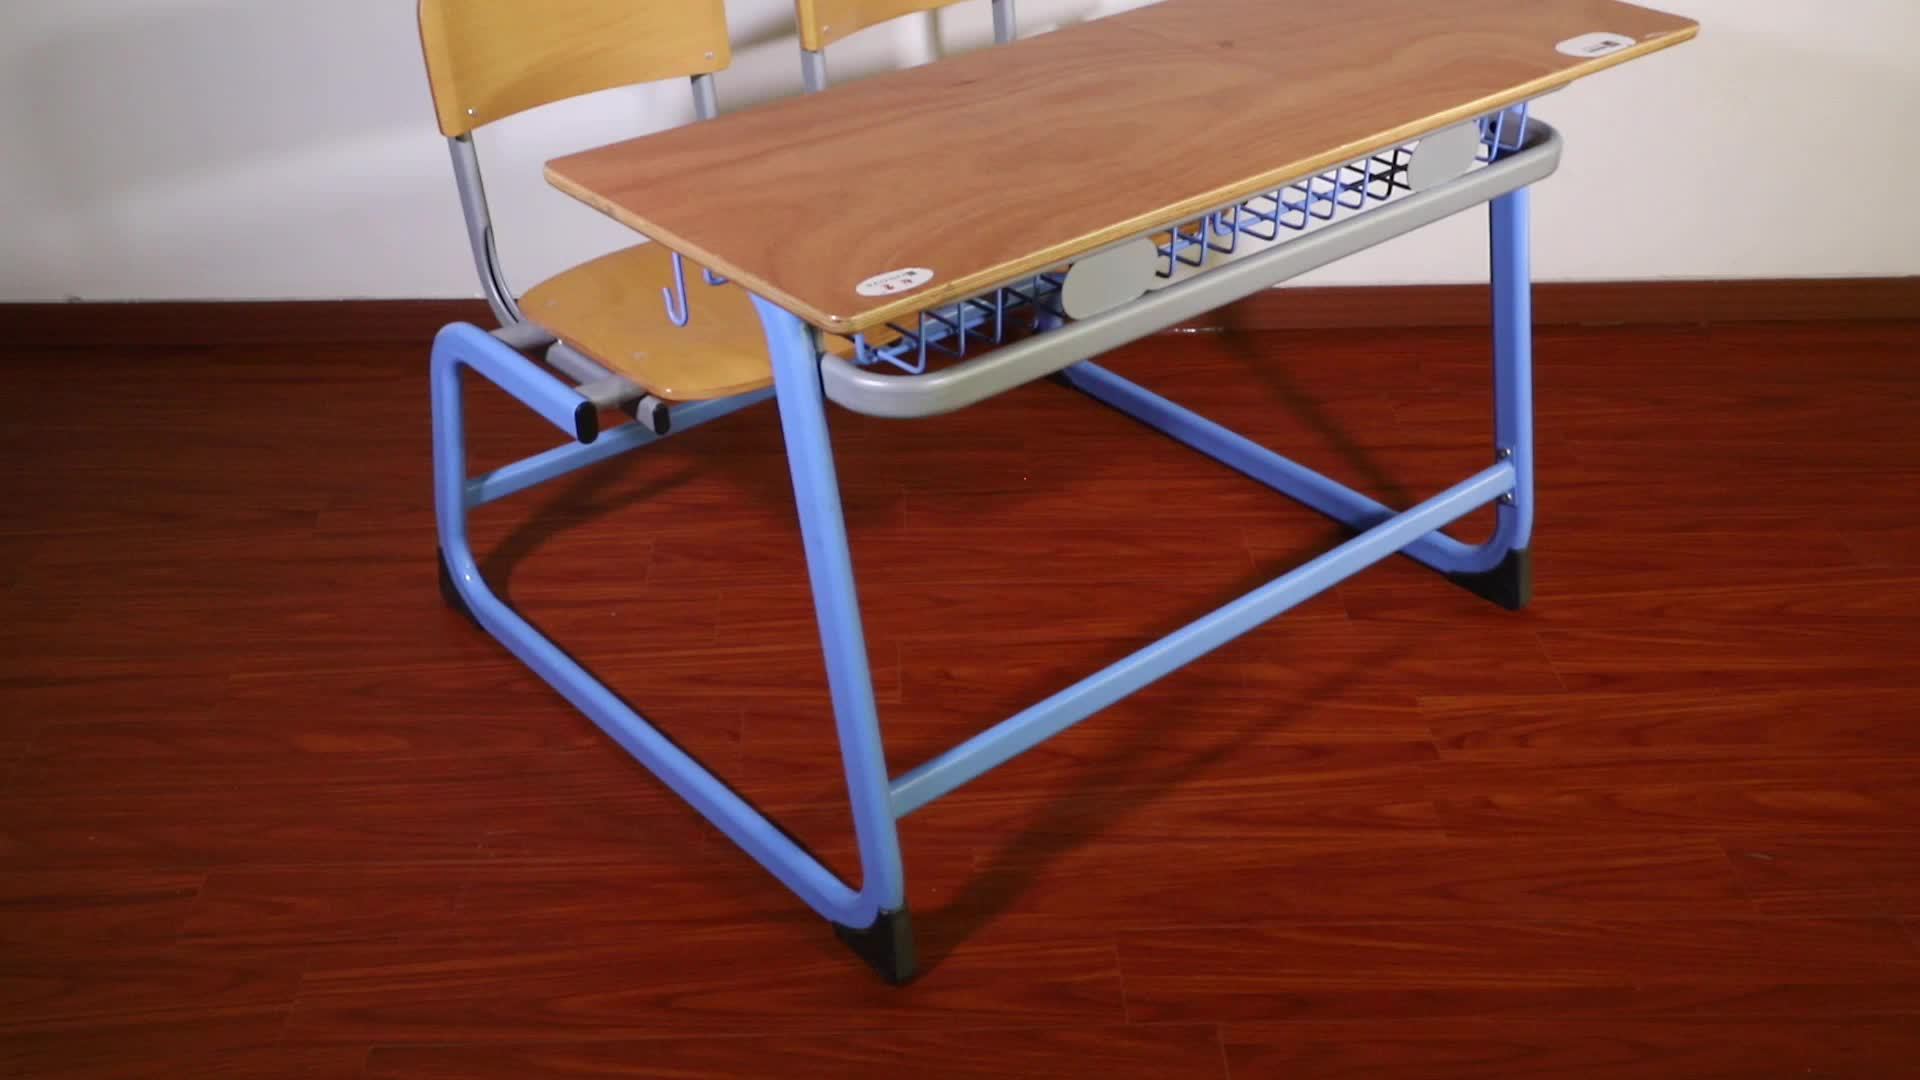 (Furniture)Double school desk and school chair ,school furniture for student /study ,classroom furniture